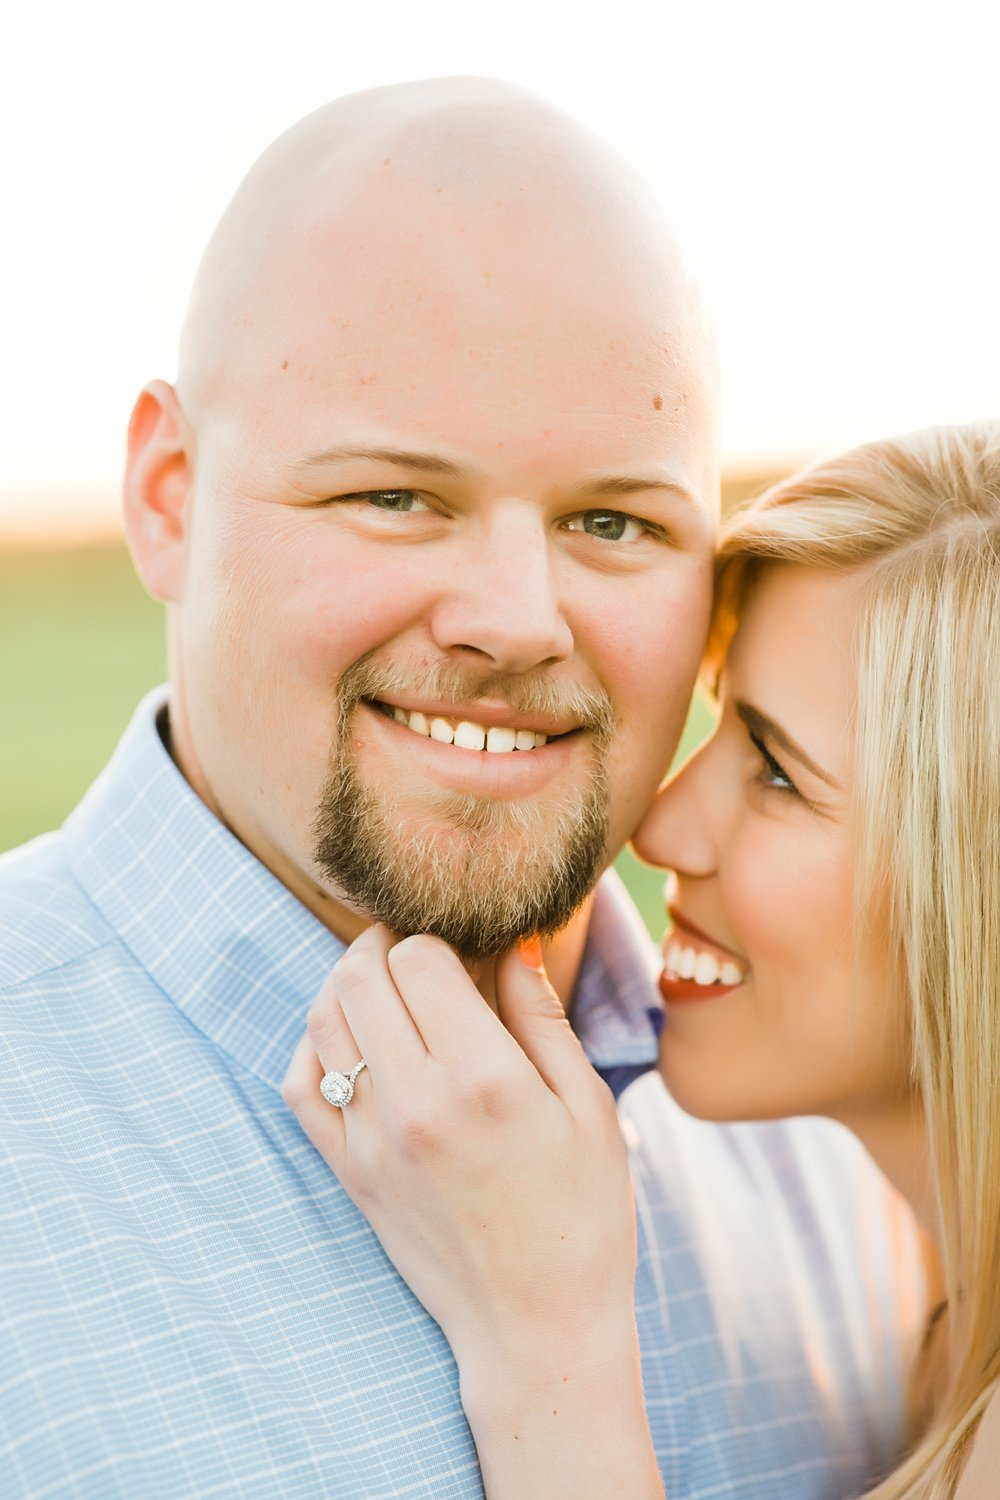 kayla-trent-country-engagement-session-texas-windthorst-graham-wichita-falls-jeep-engaged-00015.jpg